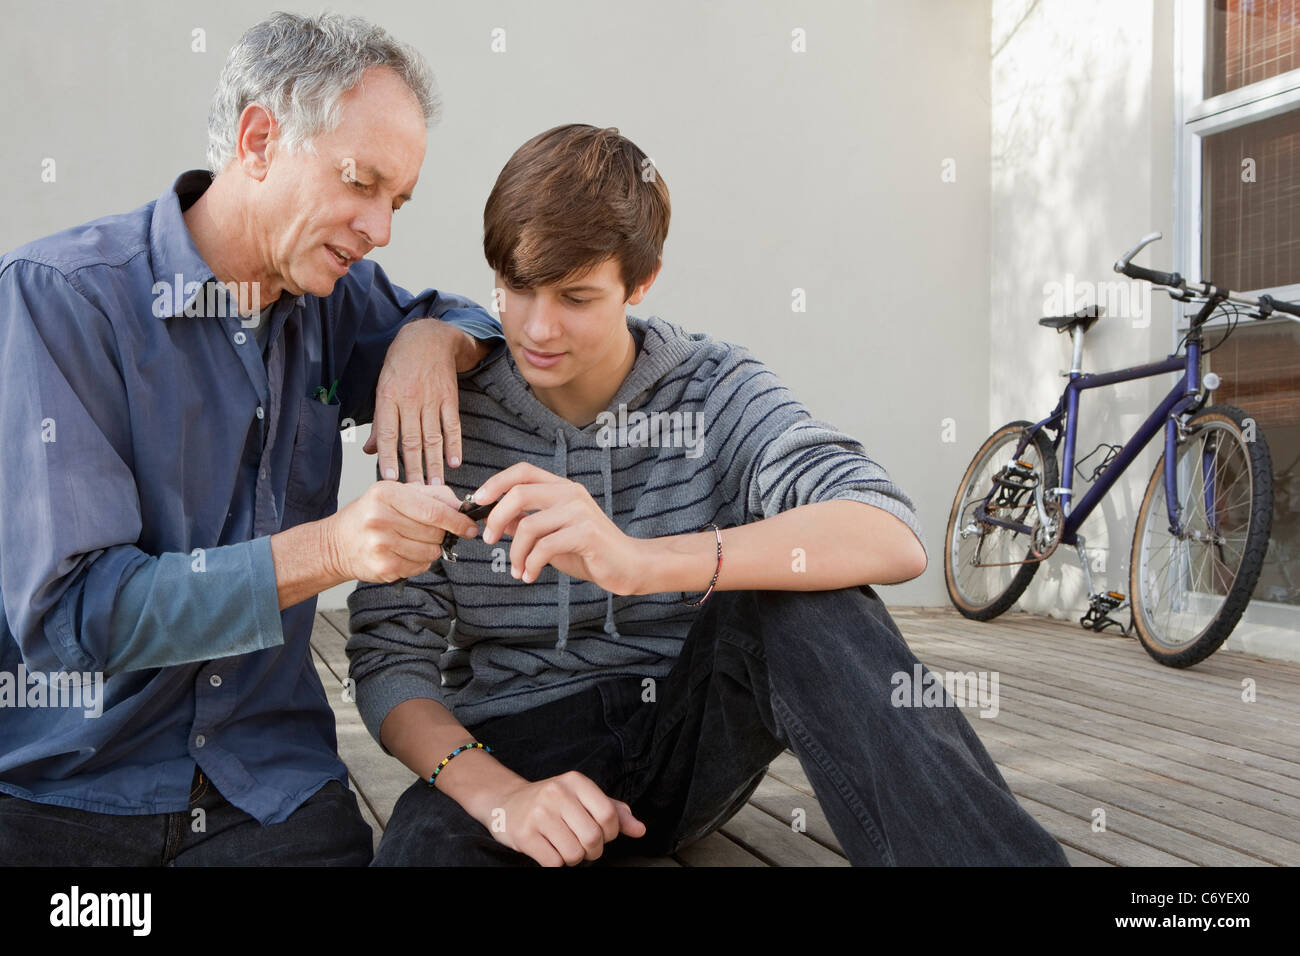 Father and son examining tool together - Stock Image